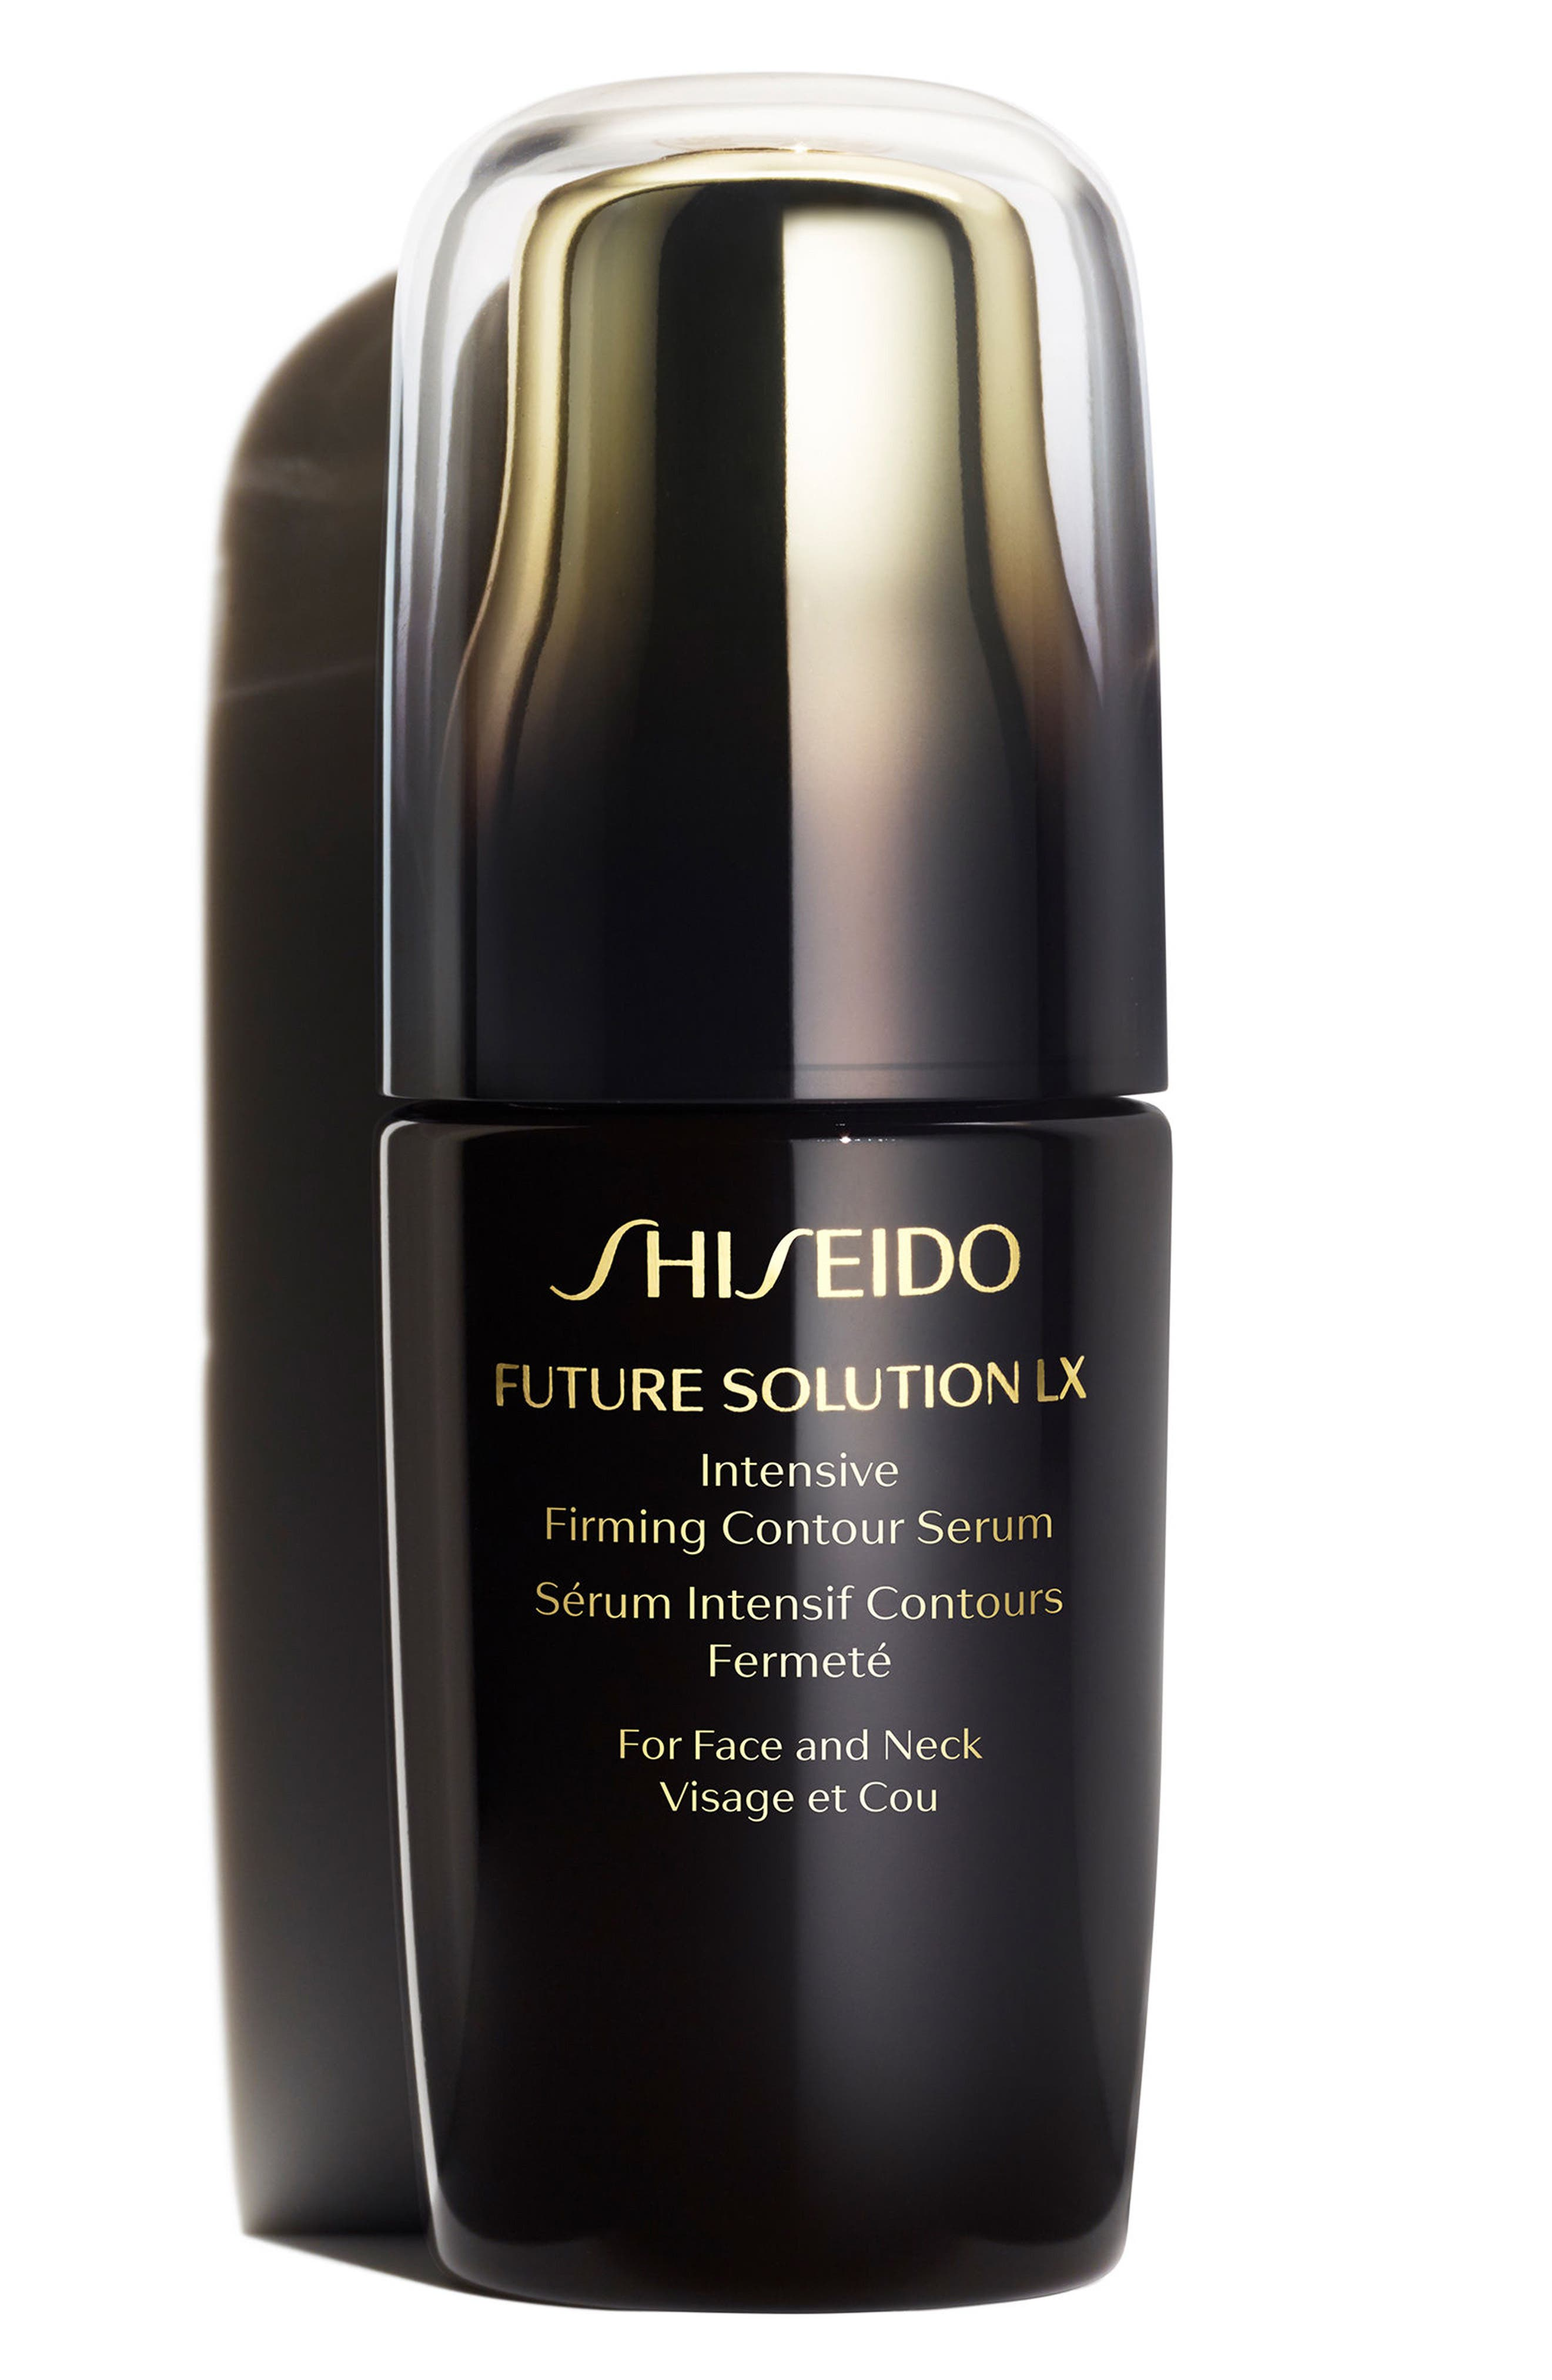 Shiseido Future Solution LX Intensive Firming Serum